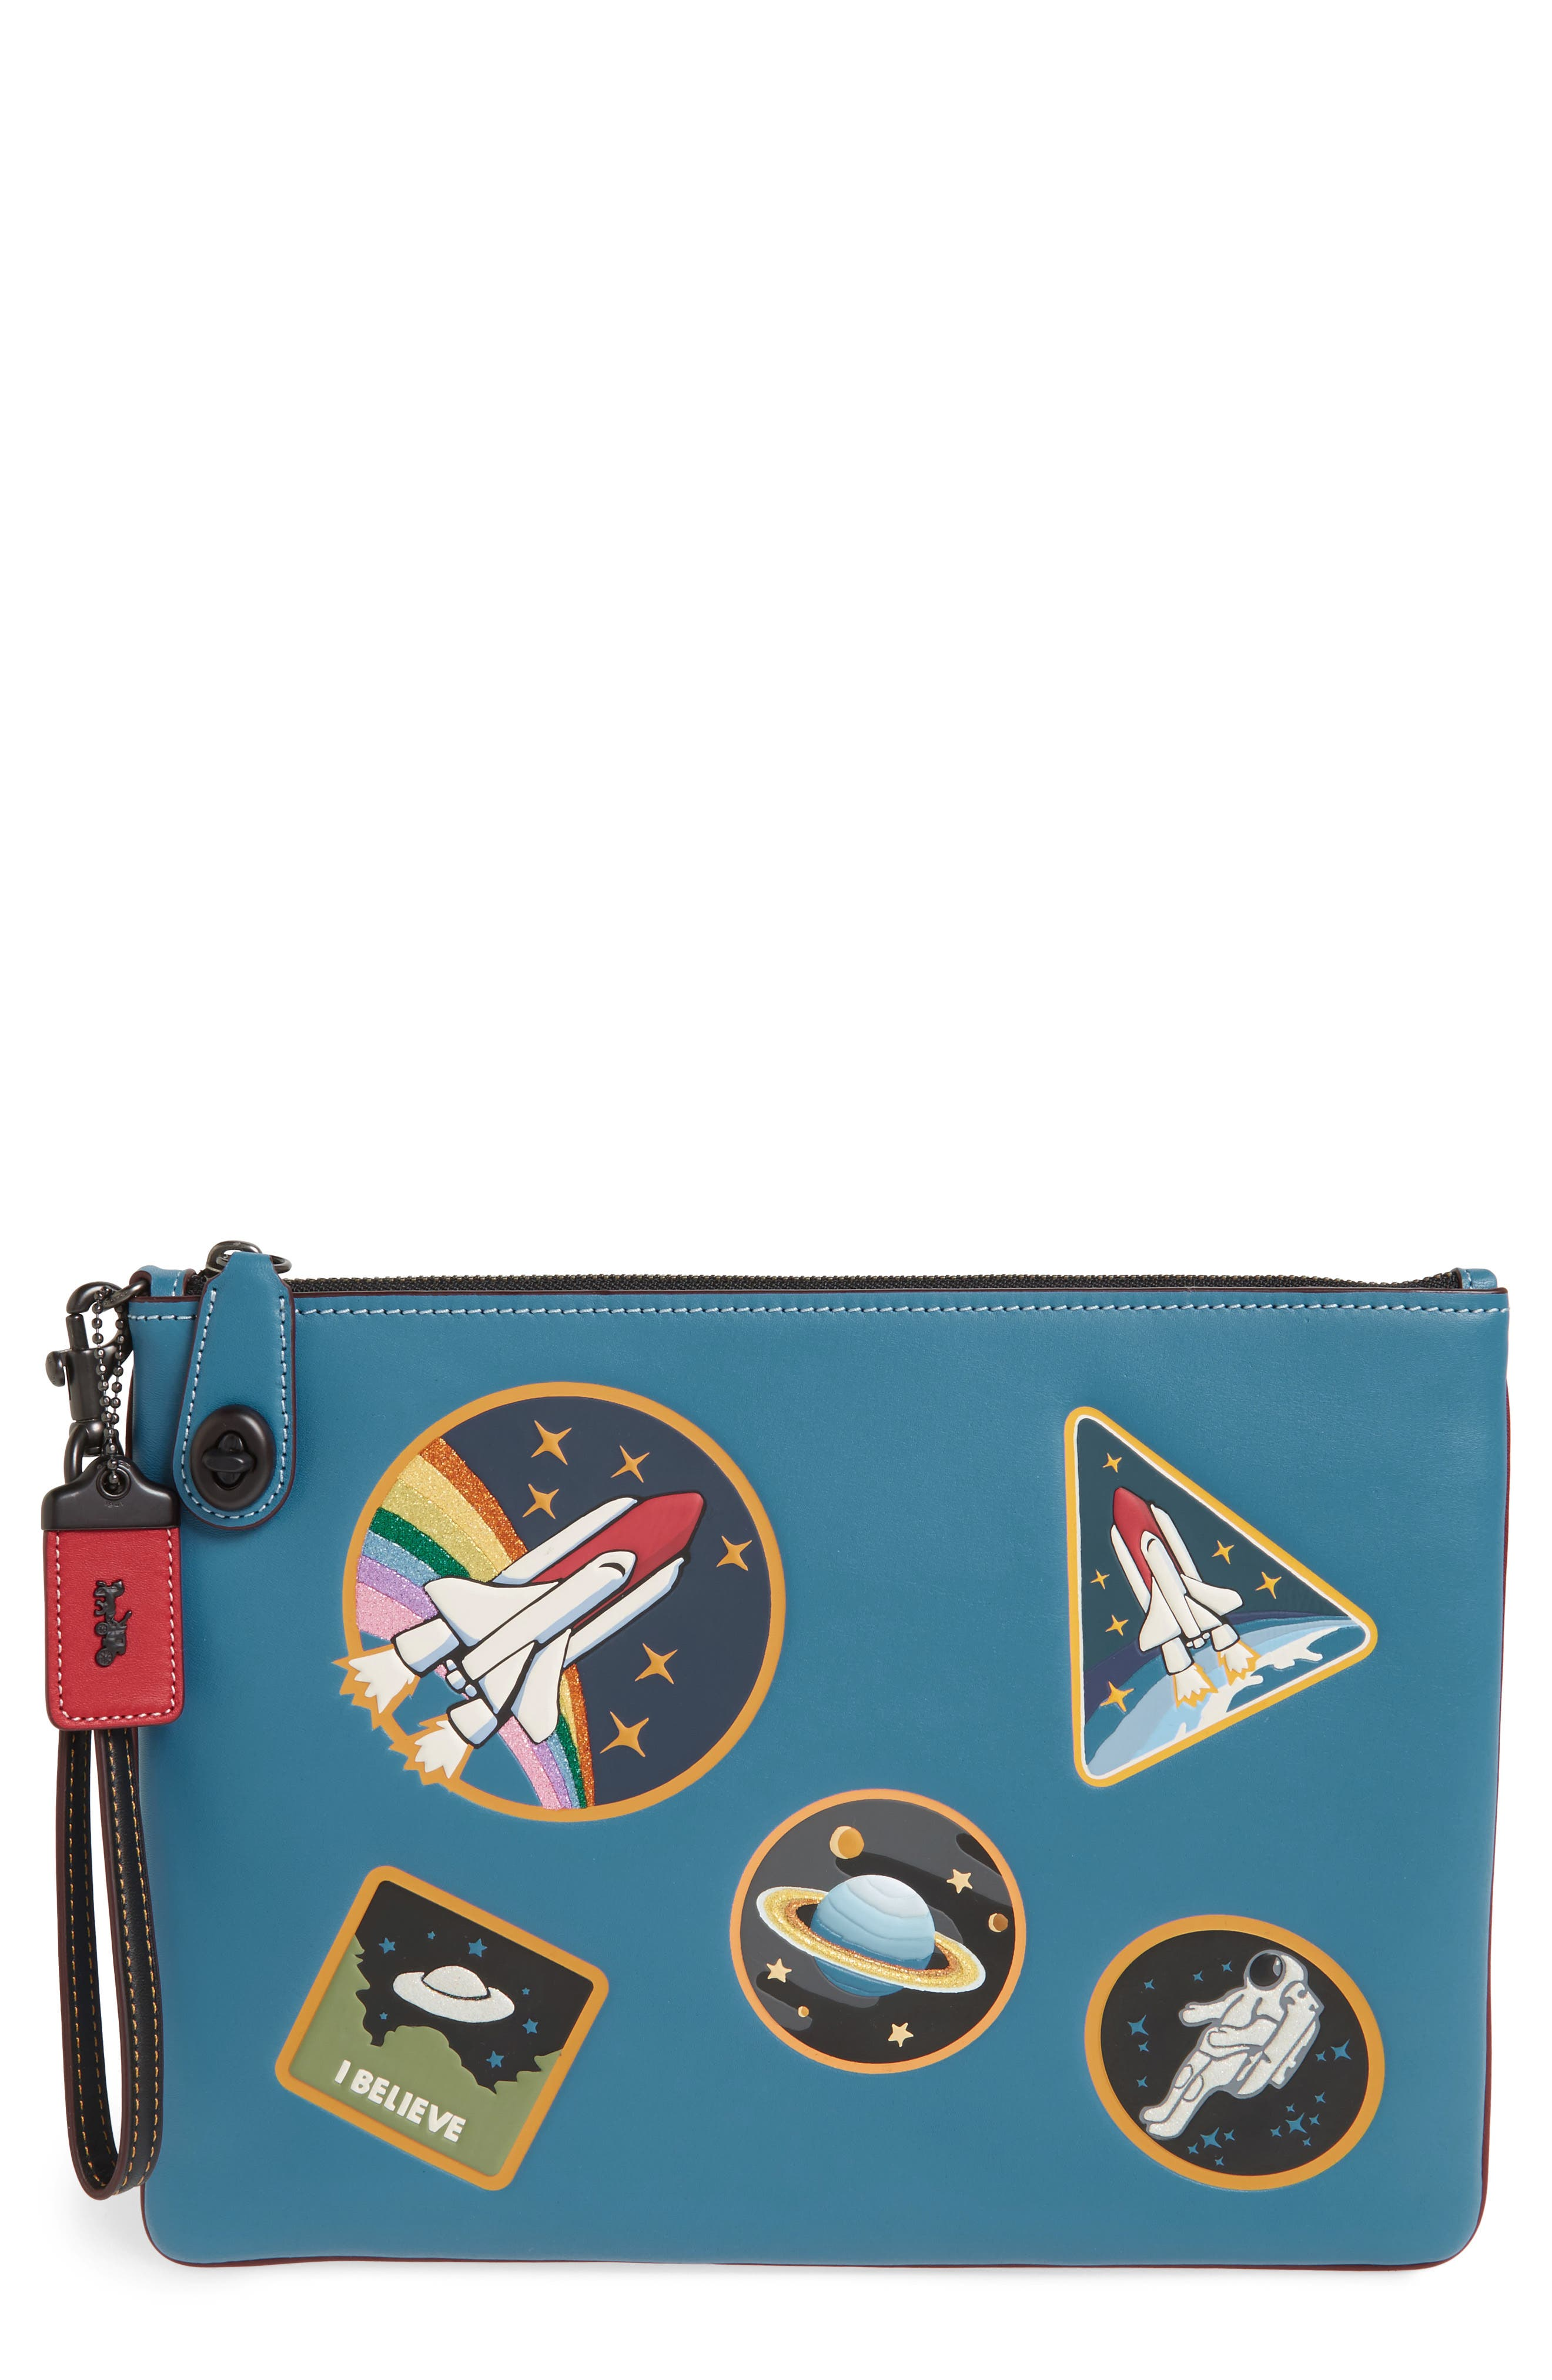 Main Image - COACH 1941 Space Patches Leather Wristlet